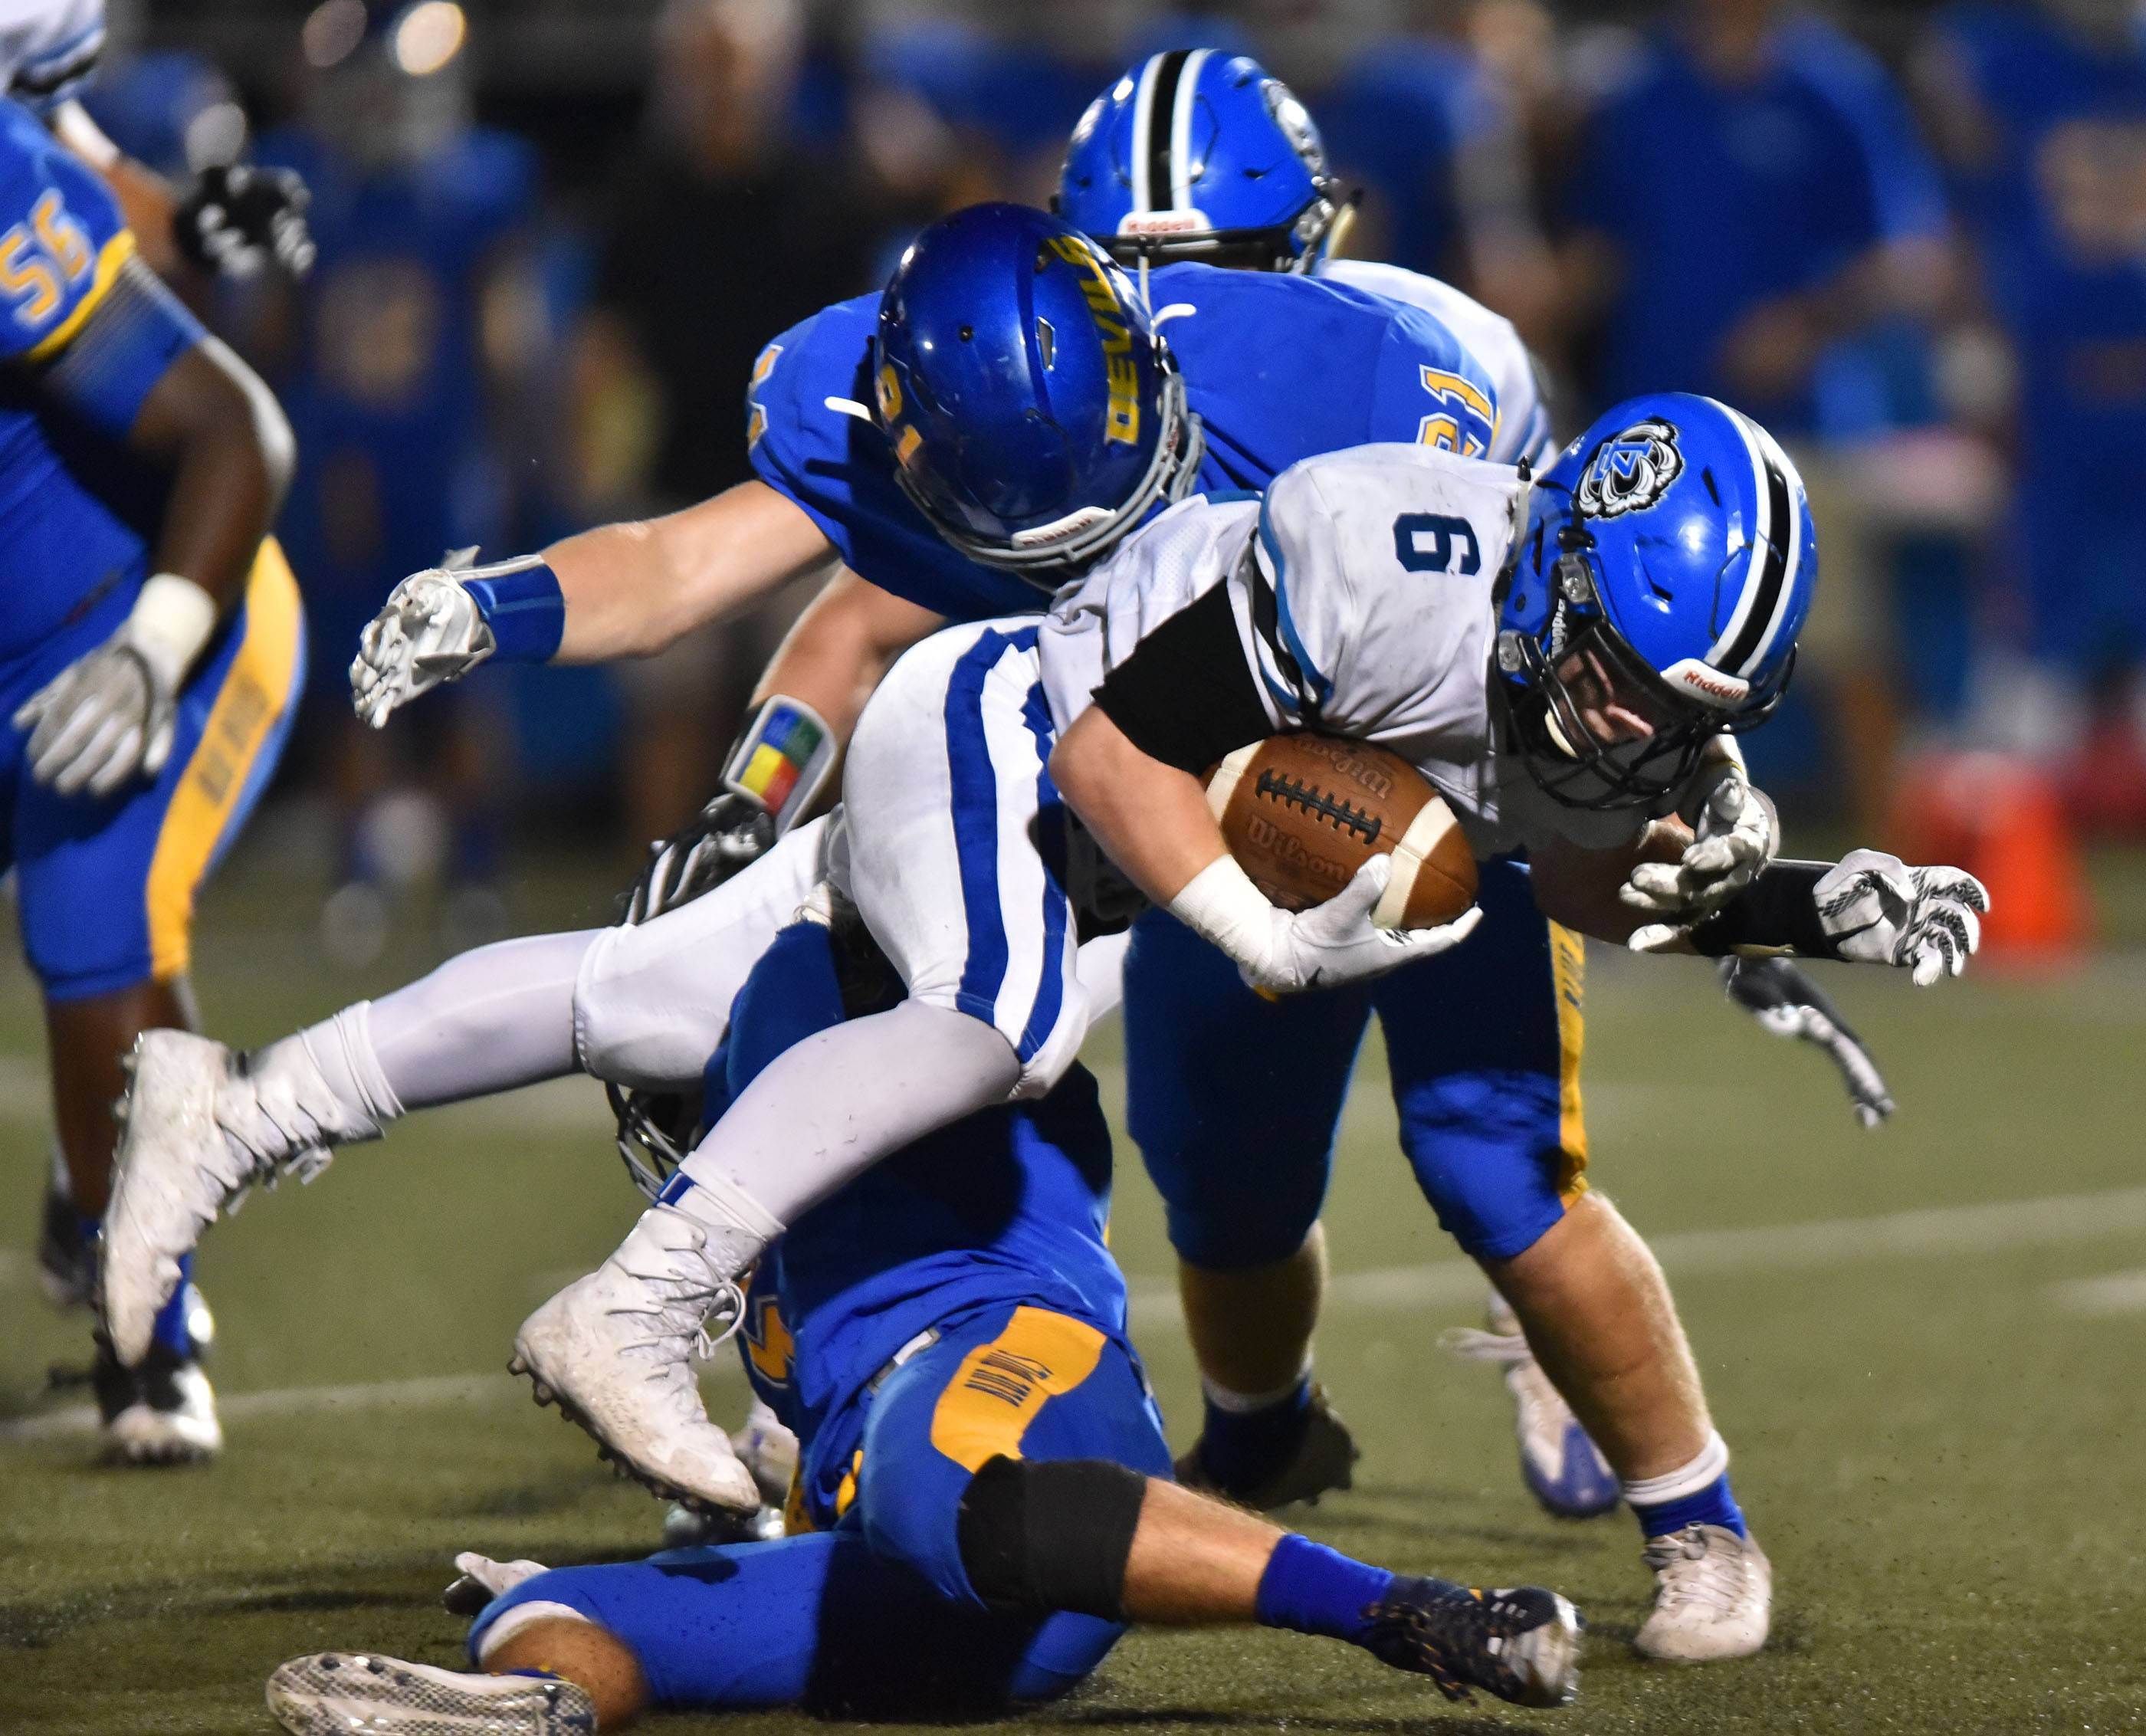 Lake Zurich's Joey Stutzman is tripped up by Warren's Caden Fox and Jared Keeter on Friday in Gurnee.